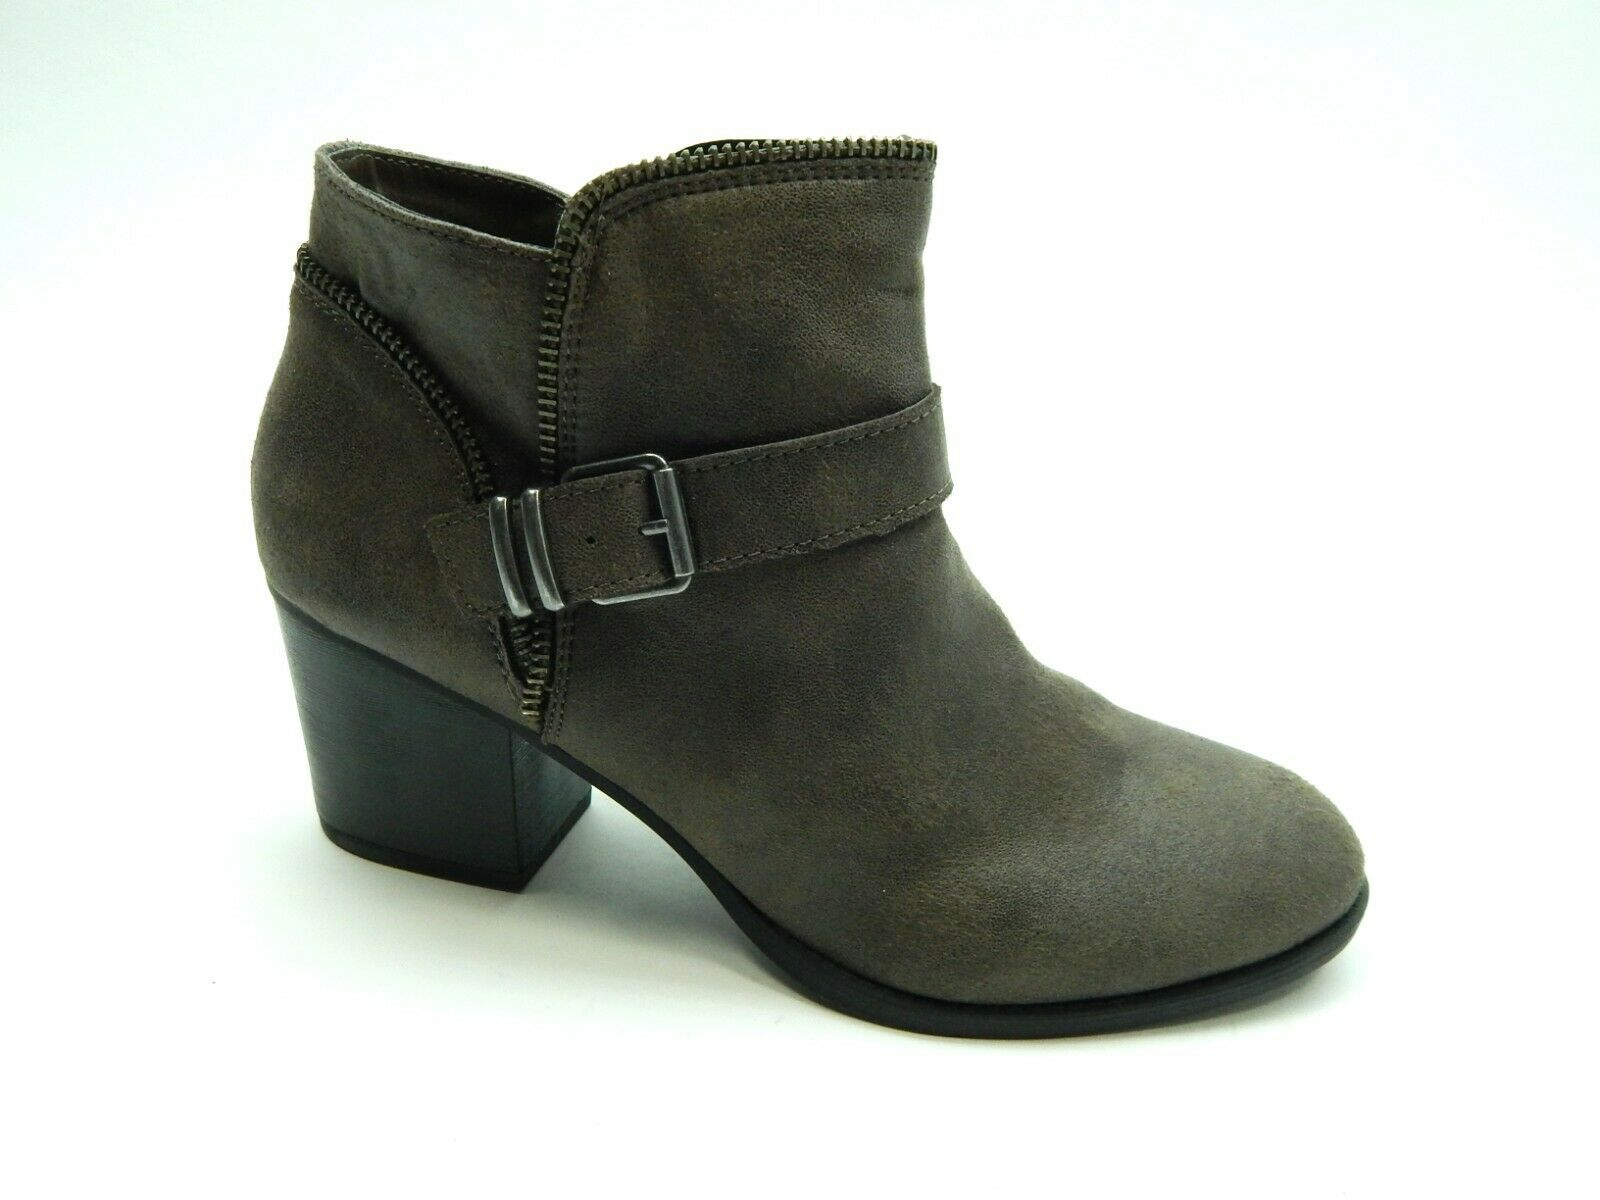 American Rag Cie millyp taupe SM Femmes Bottes Taille 6